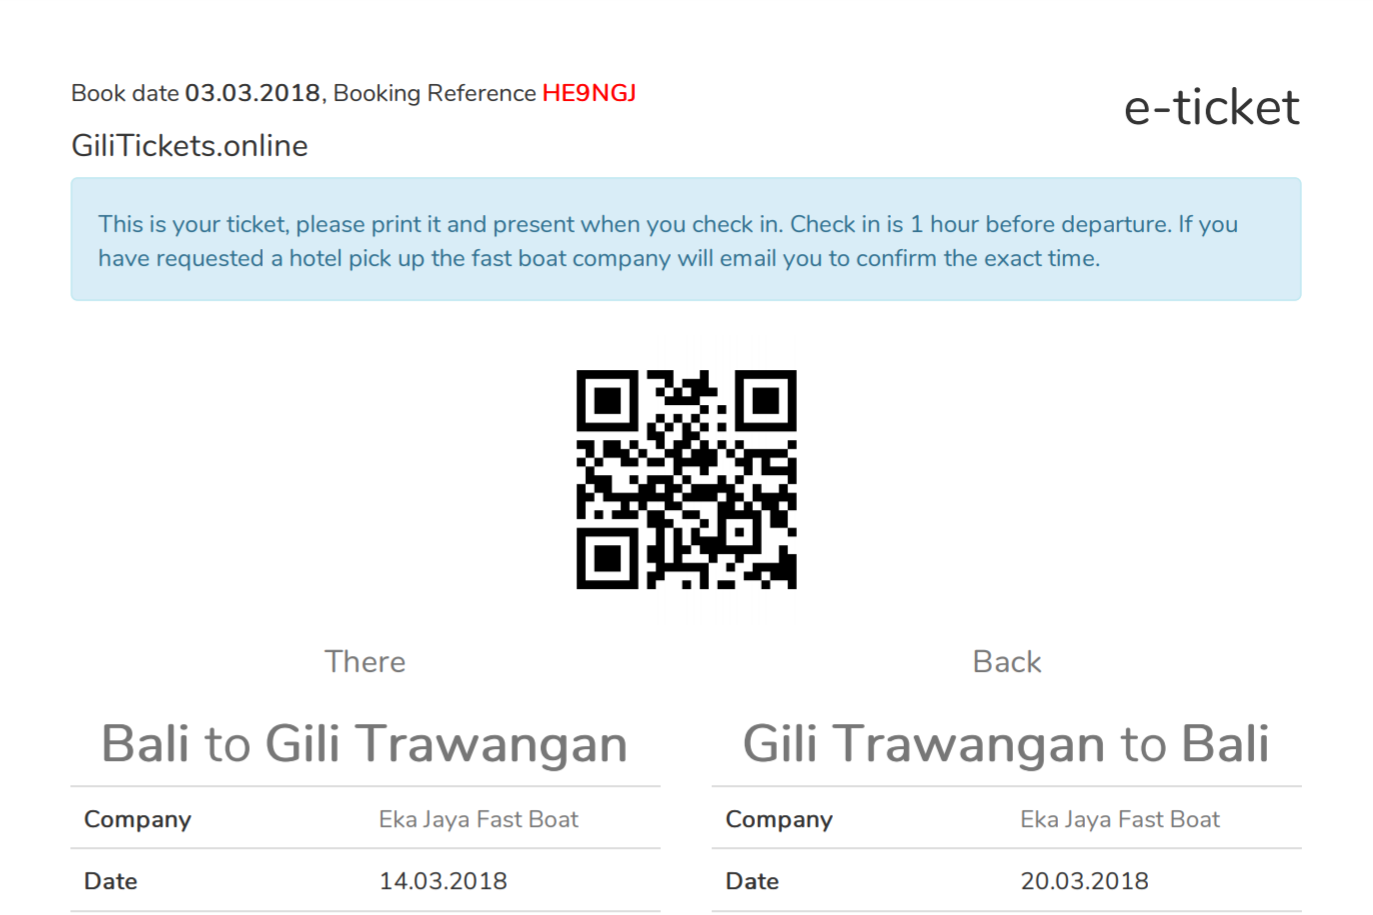 Sample ticket from Bali to Gili Trawangan